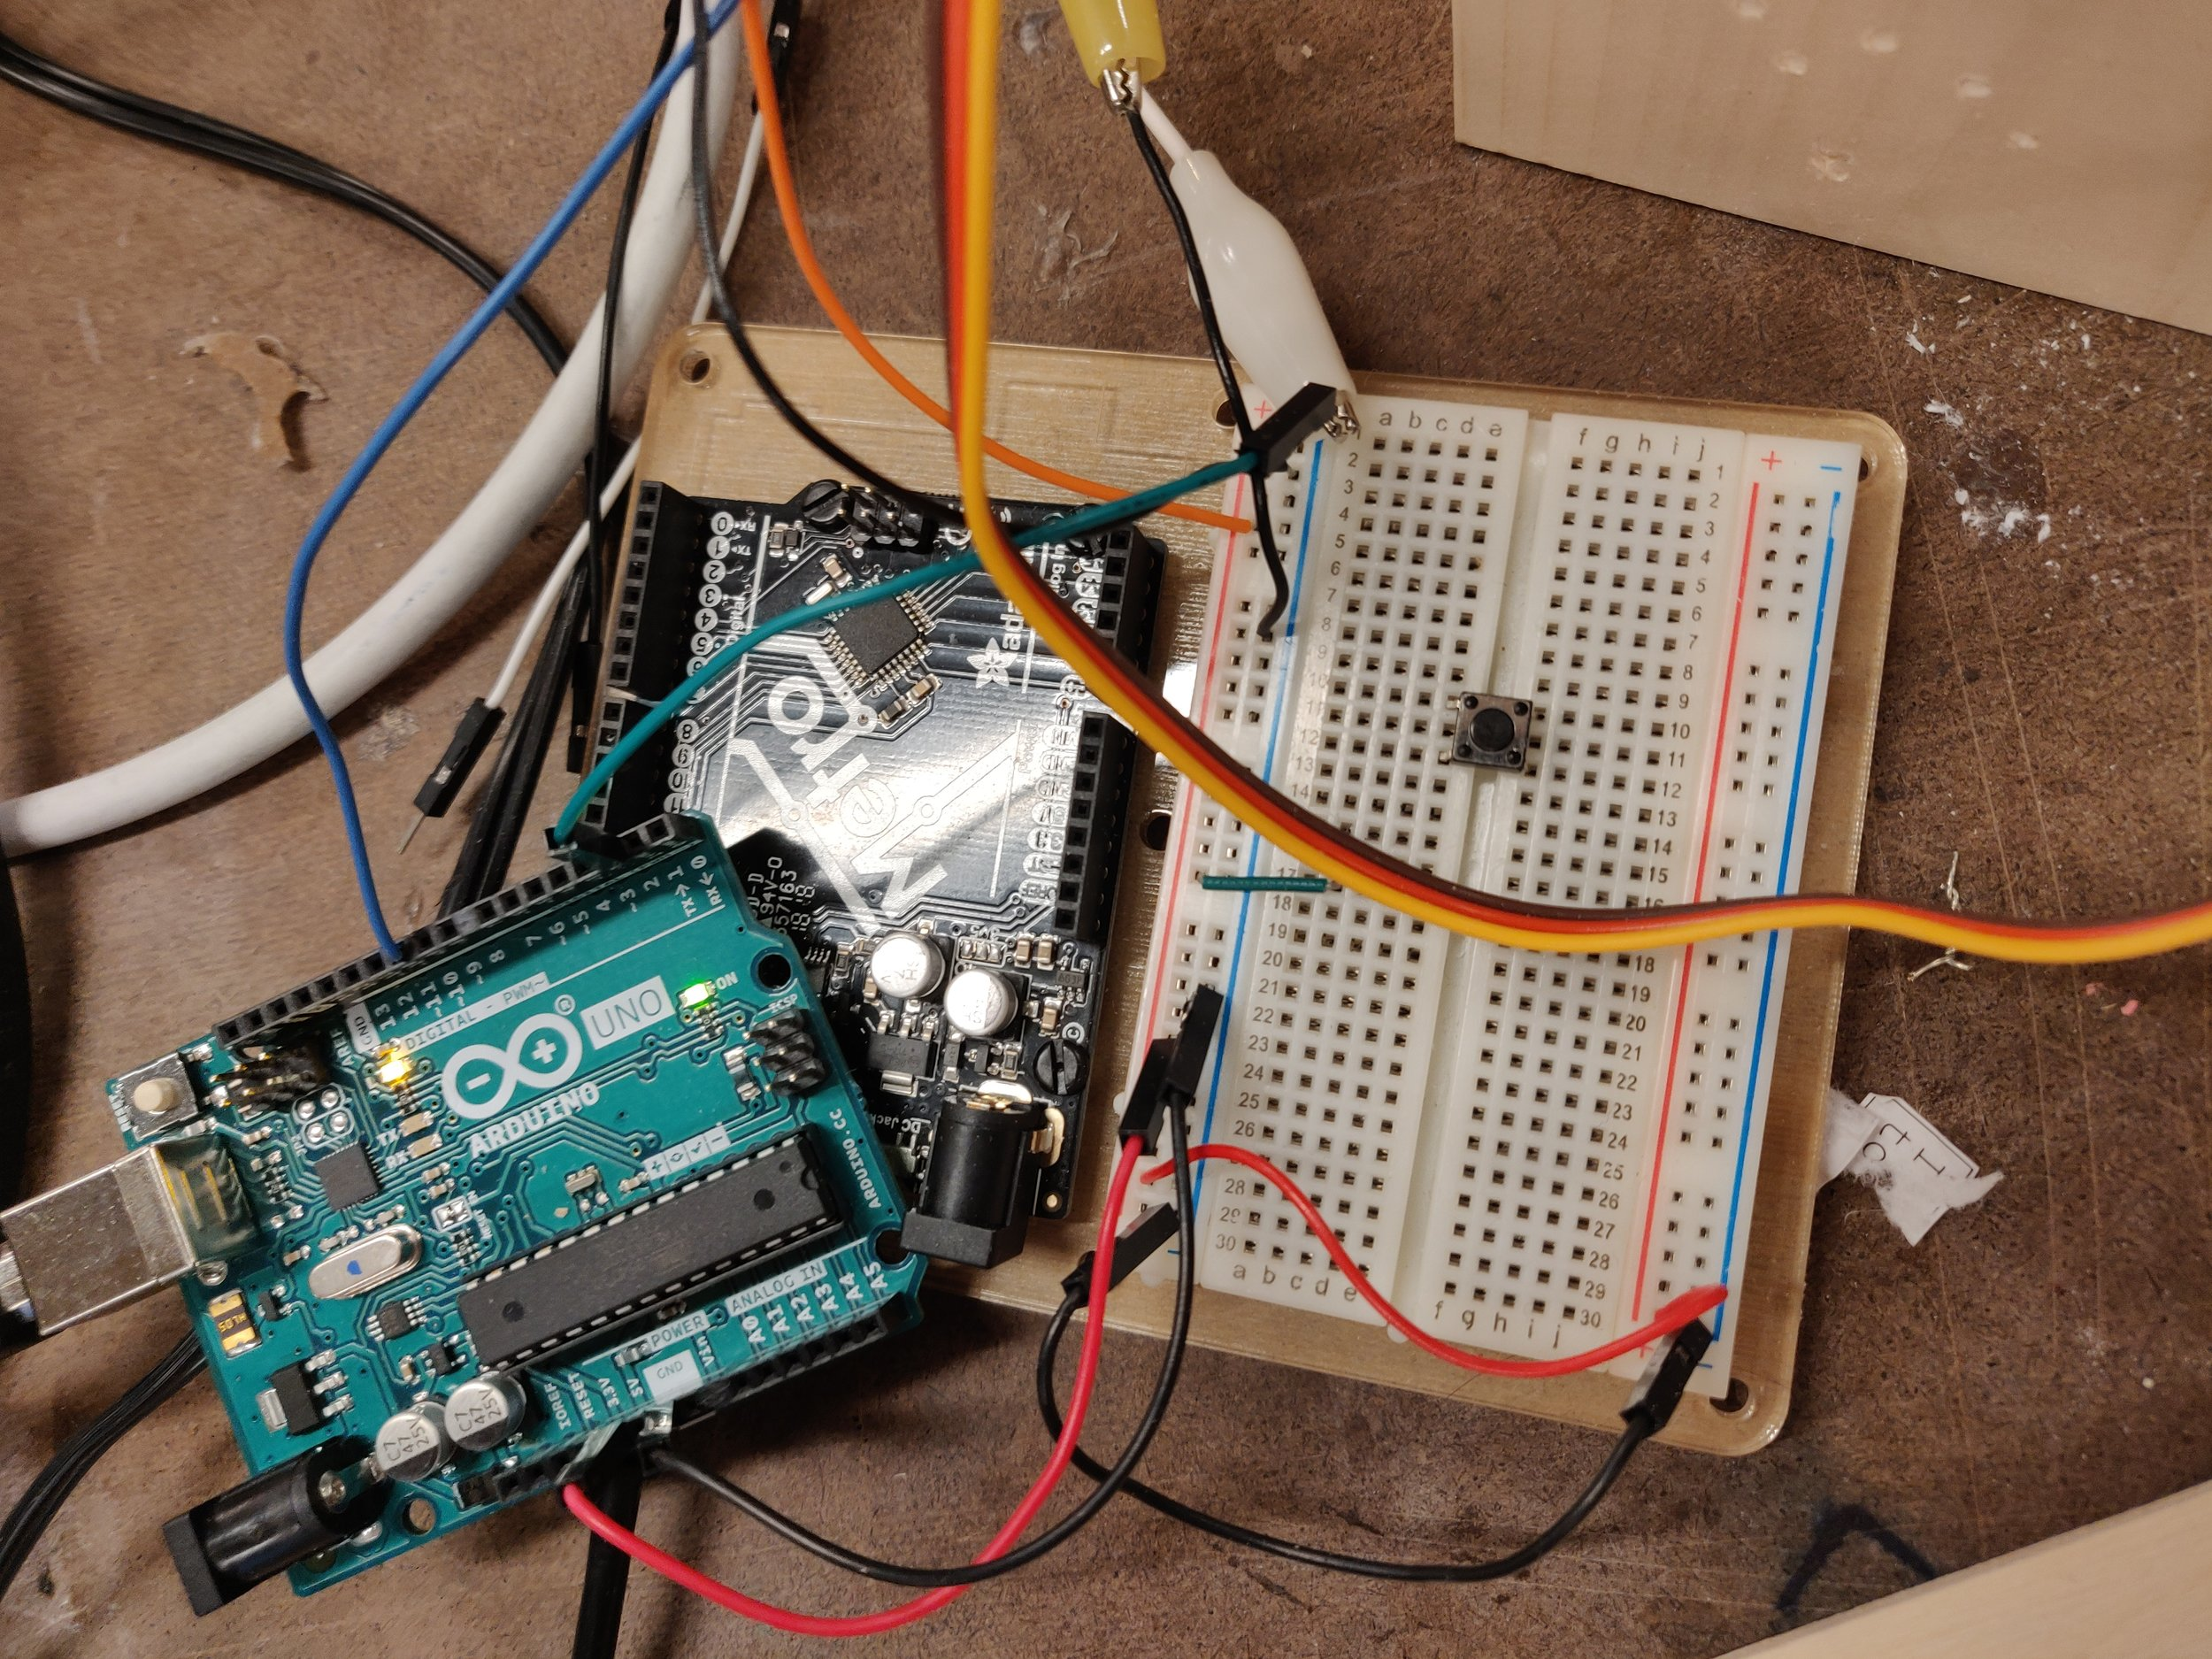 Arduino wiring for prototyping